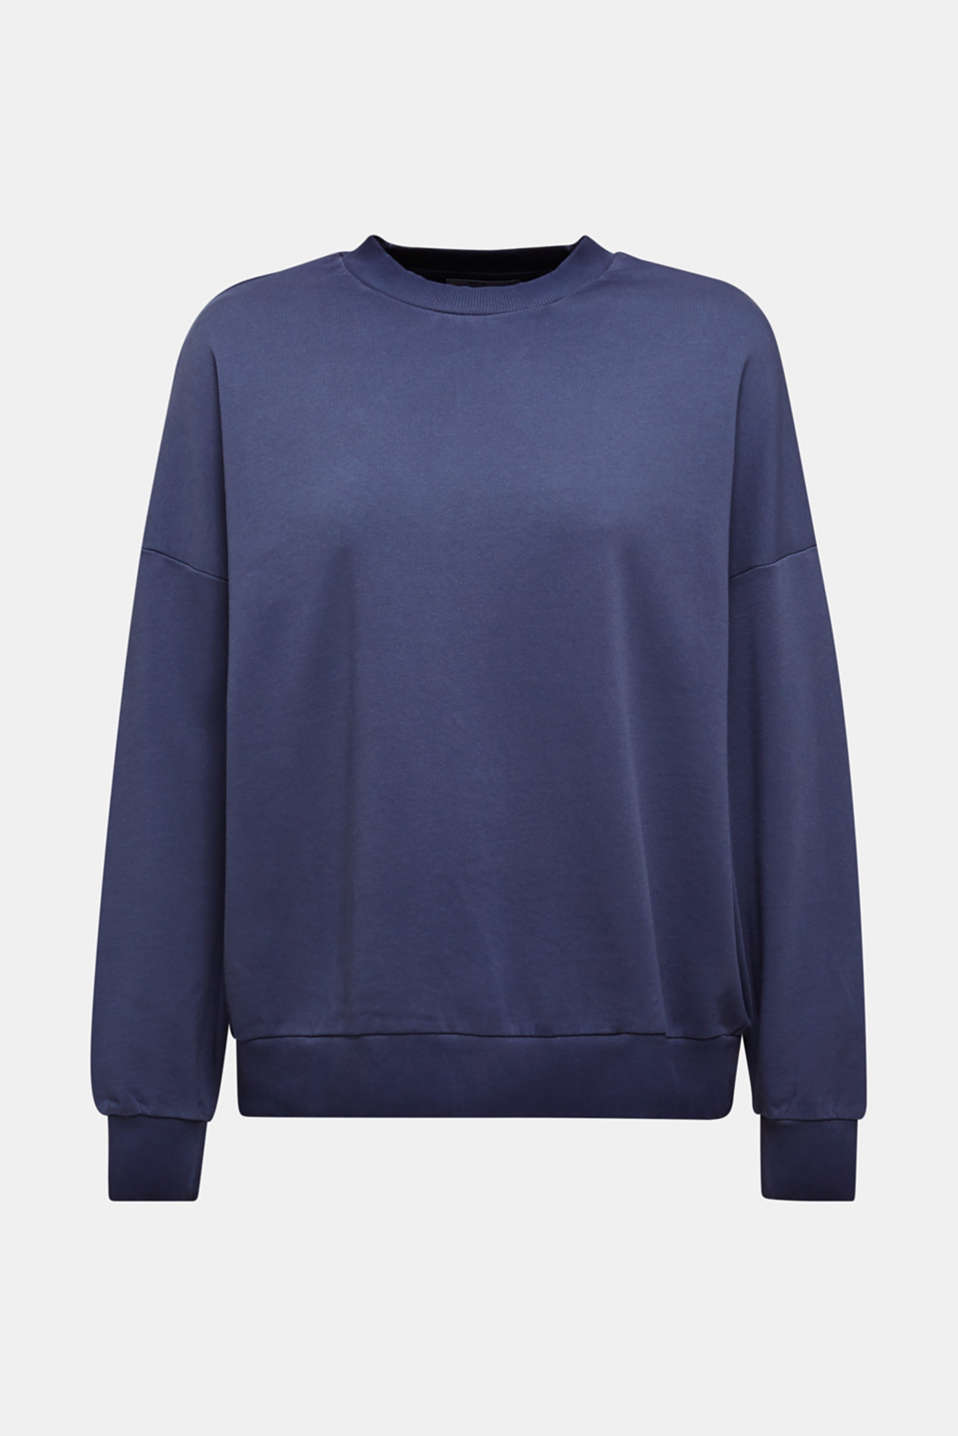 Sweatshirt with batwing sleeves, 100% cotton, NAVY, detail image number 7